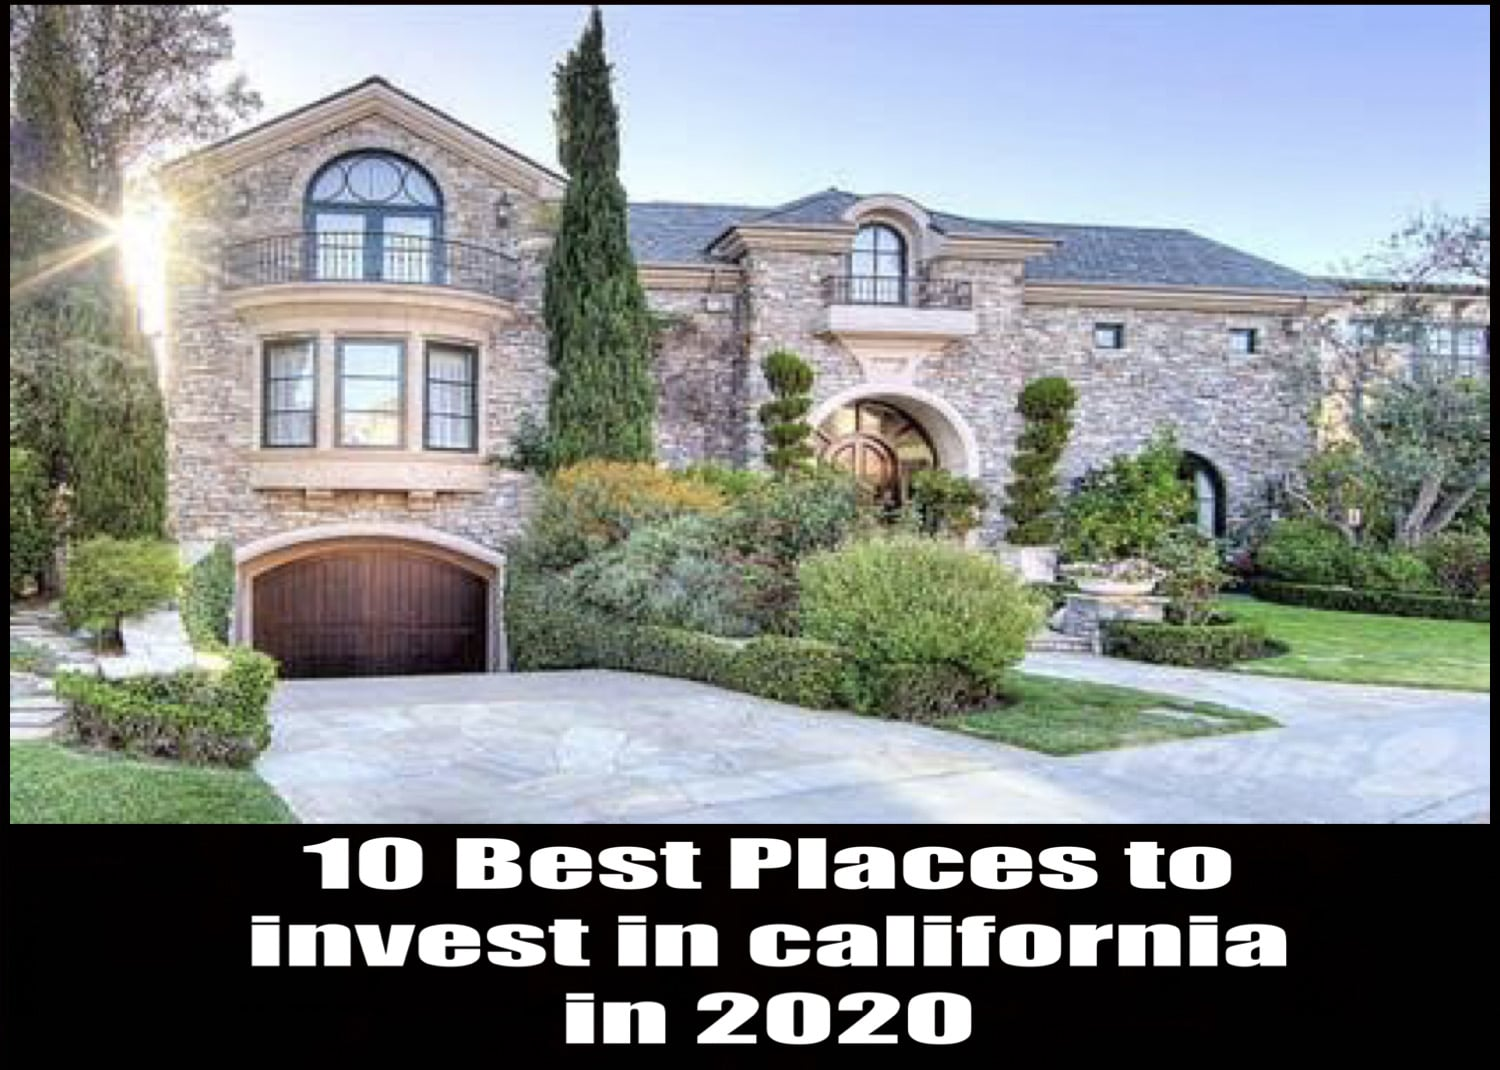 10 Best Places to invest in california in 2020